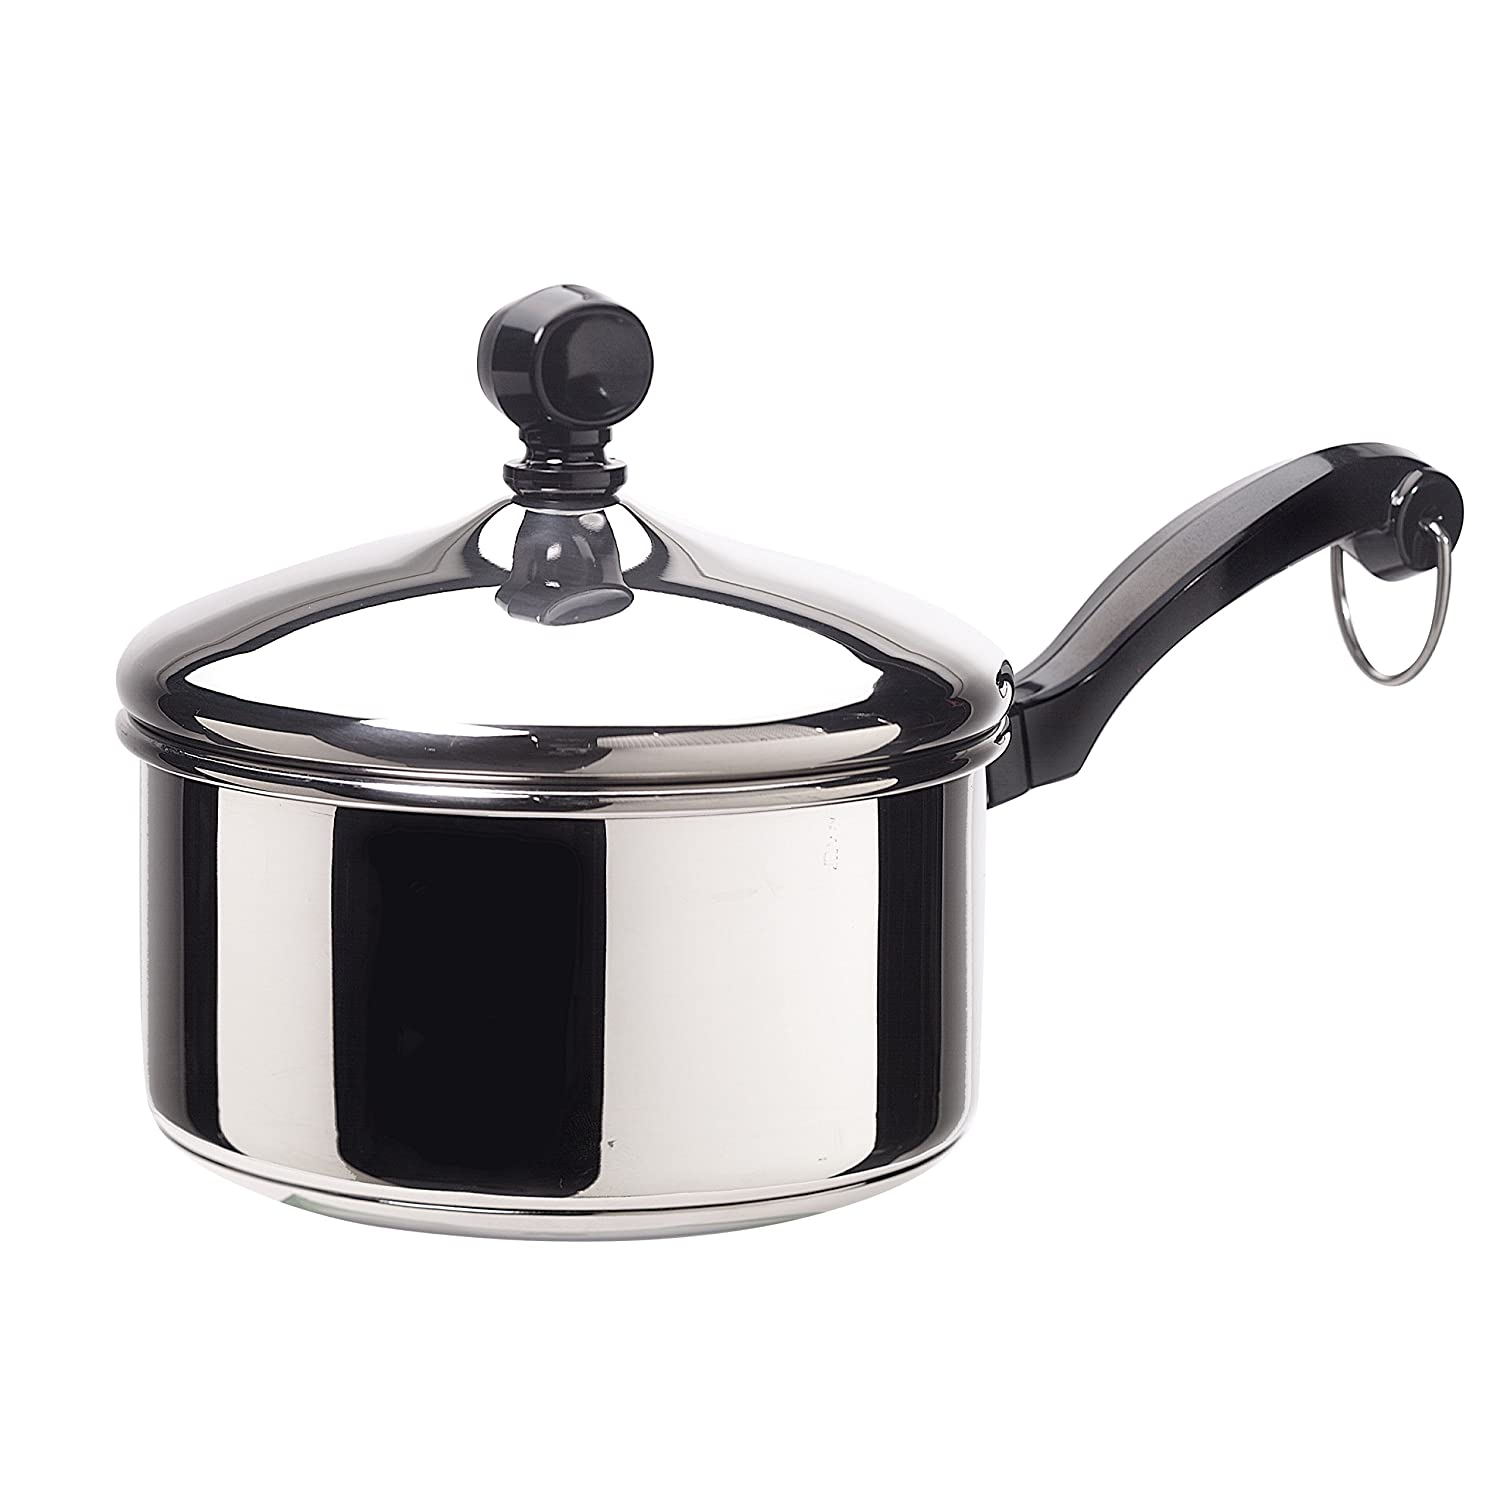 Farberware Classic Series Stainless Steel 1-Quart Covered Saucepan Meyer Corporation 50000